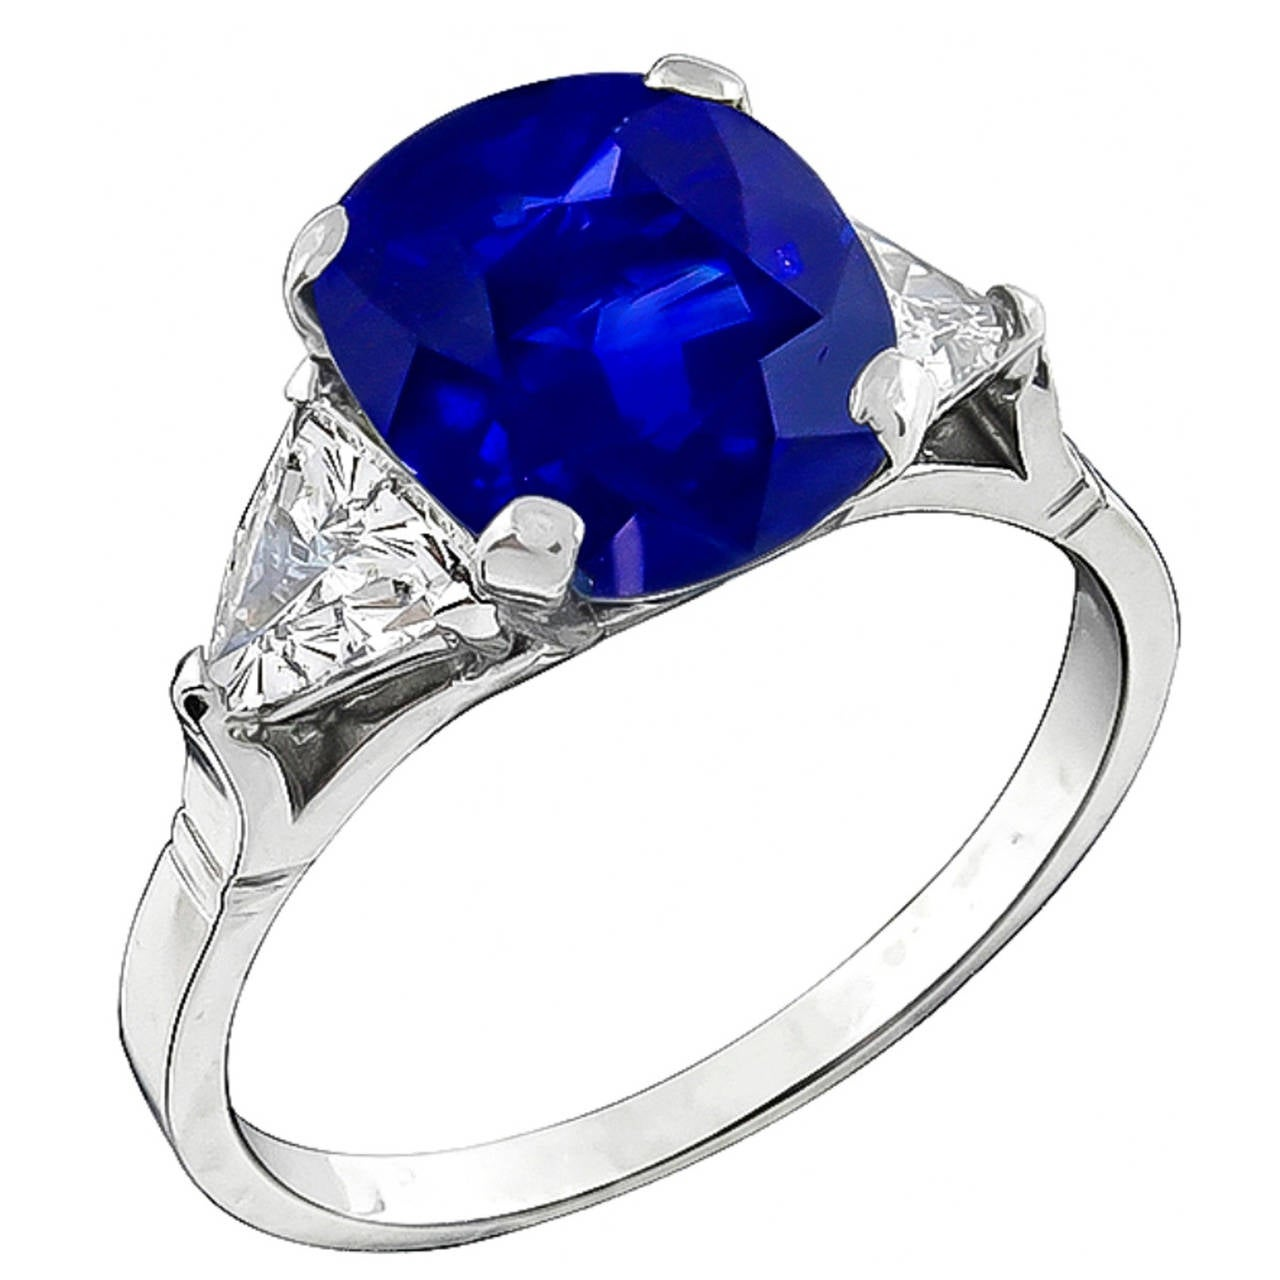 4 63 Carat Natural Cushion Cut Sapphire Diamond Platinum Ring For Sale at 1st